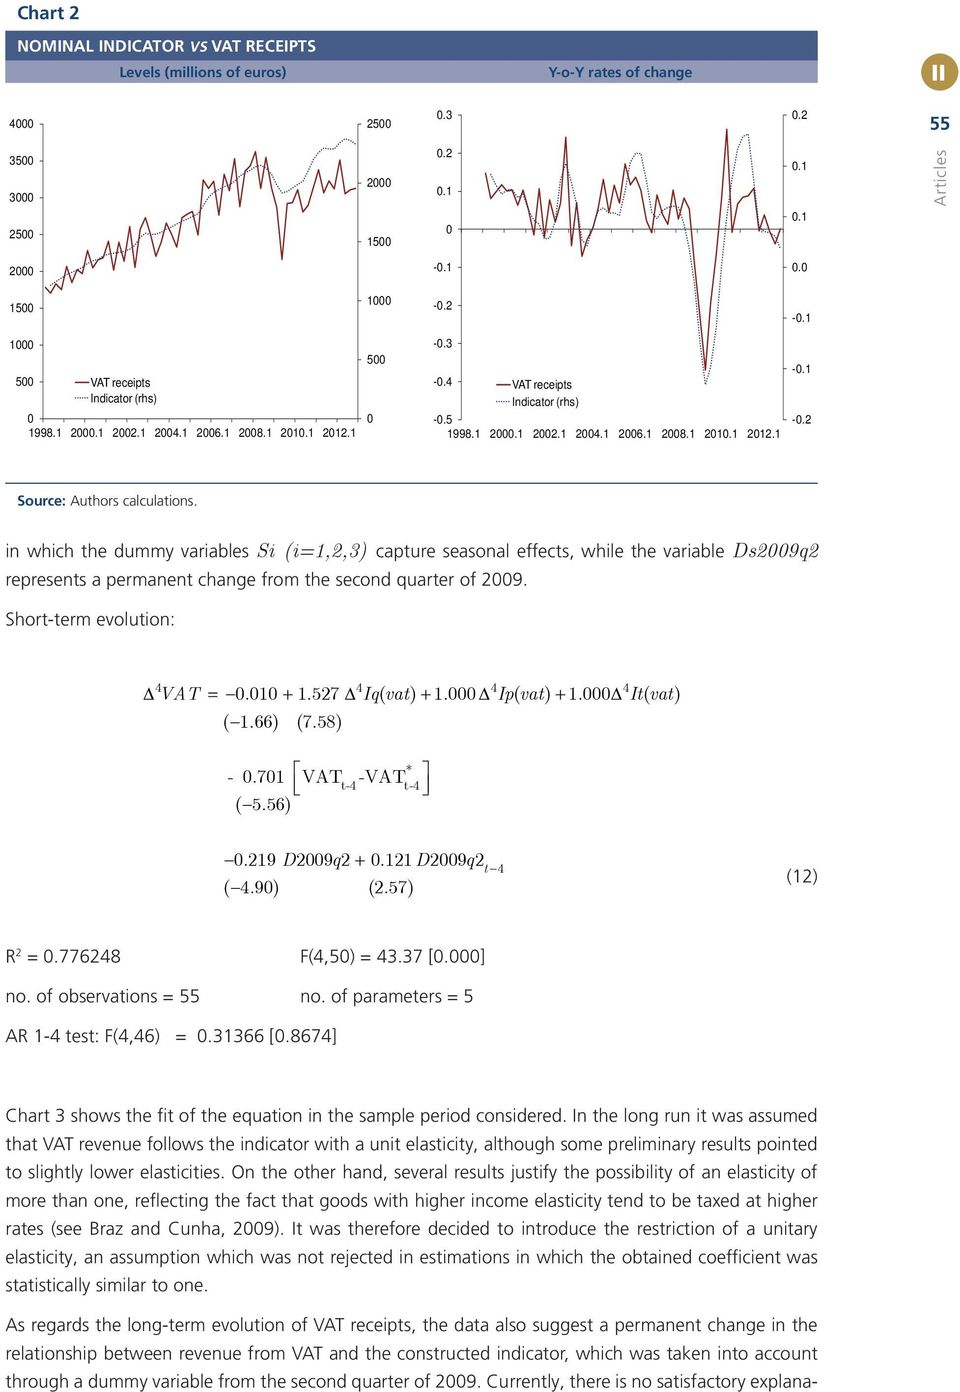 1-0.2 Source: Authors calculations. in which the dummy variables Si (i=1,2,3) capture seasonal effects, while the variable Ds2009q2 represents a permanent change from the second quarter of 2009.